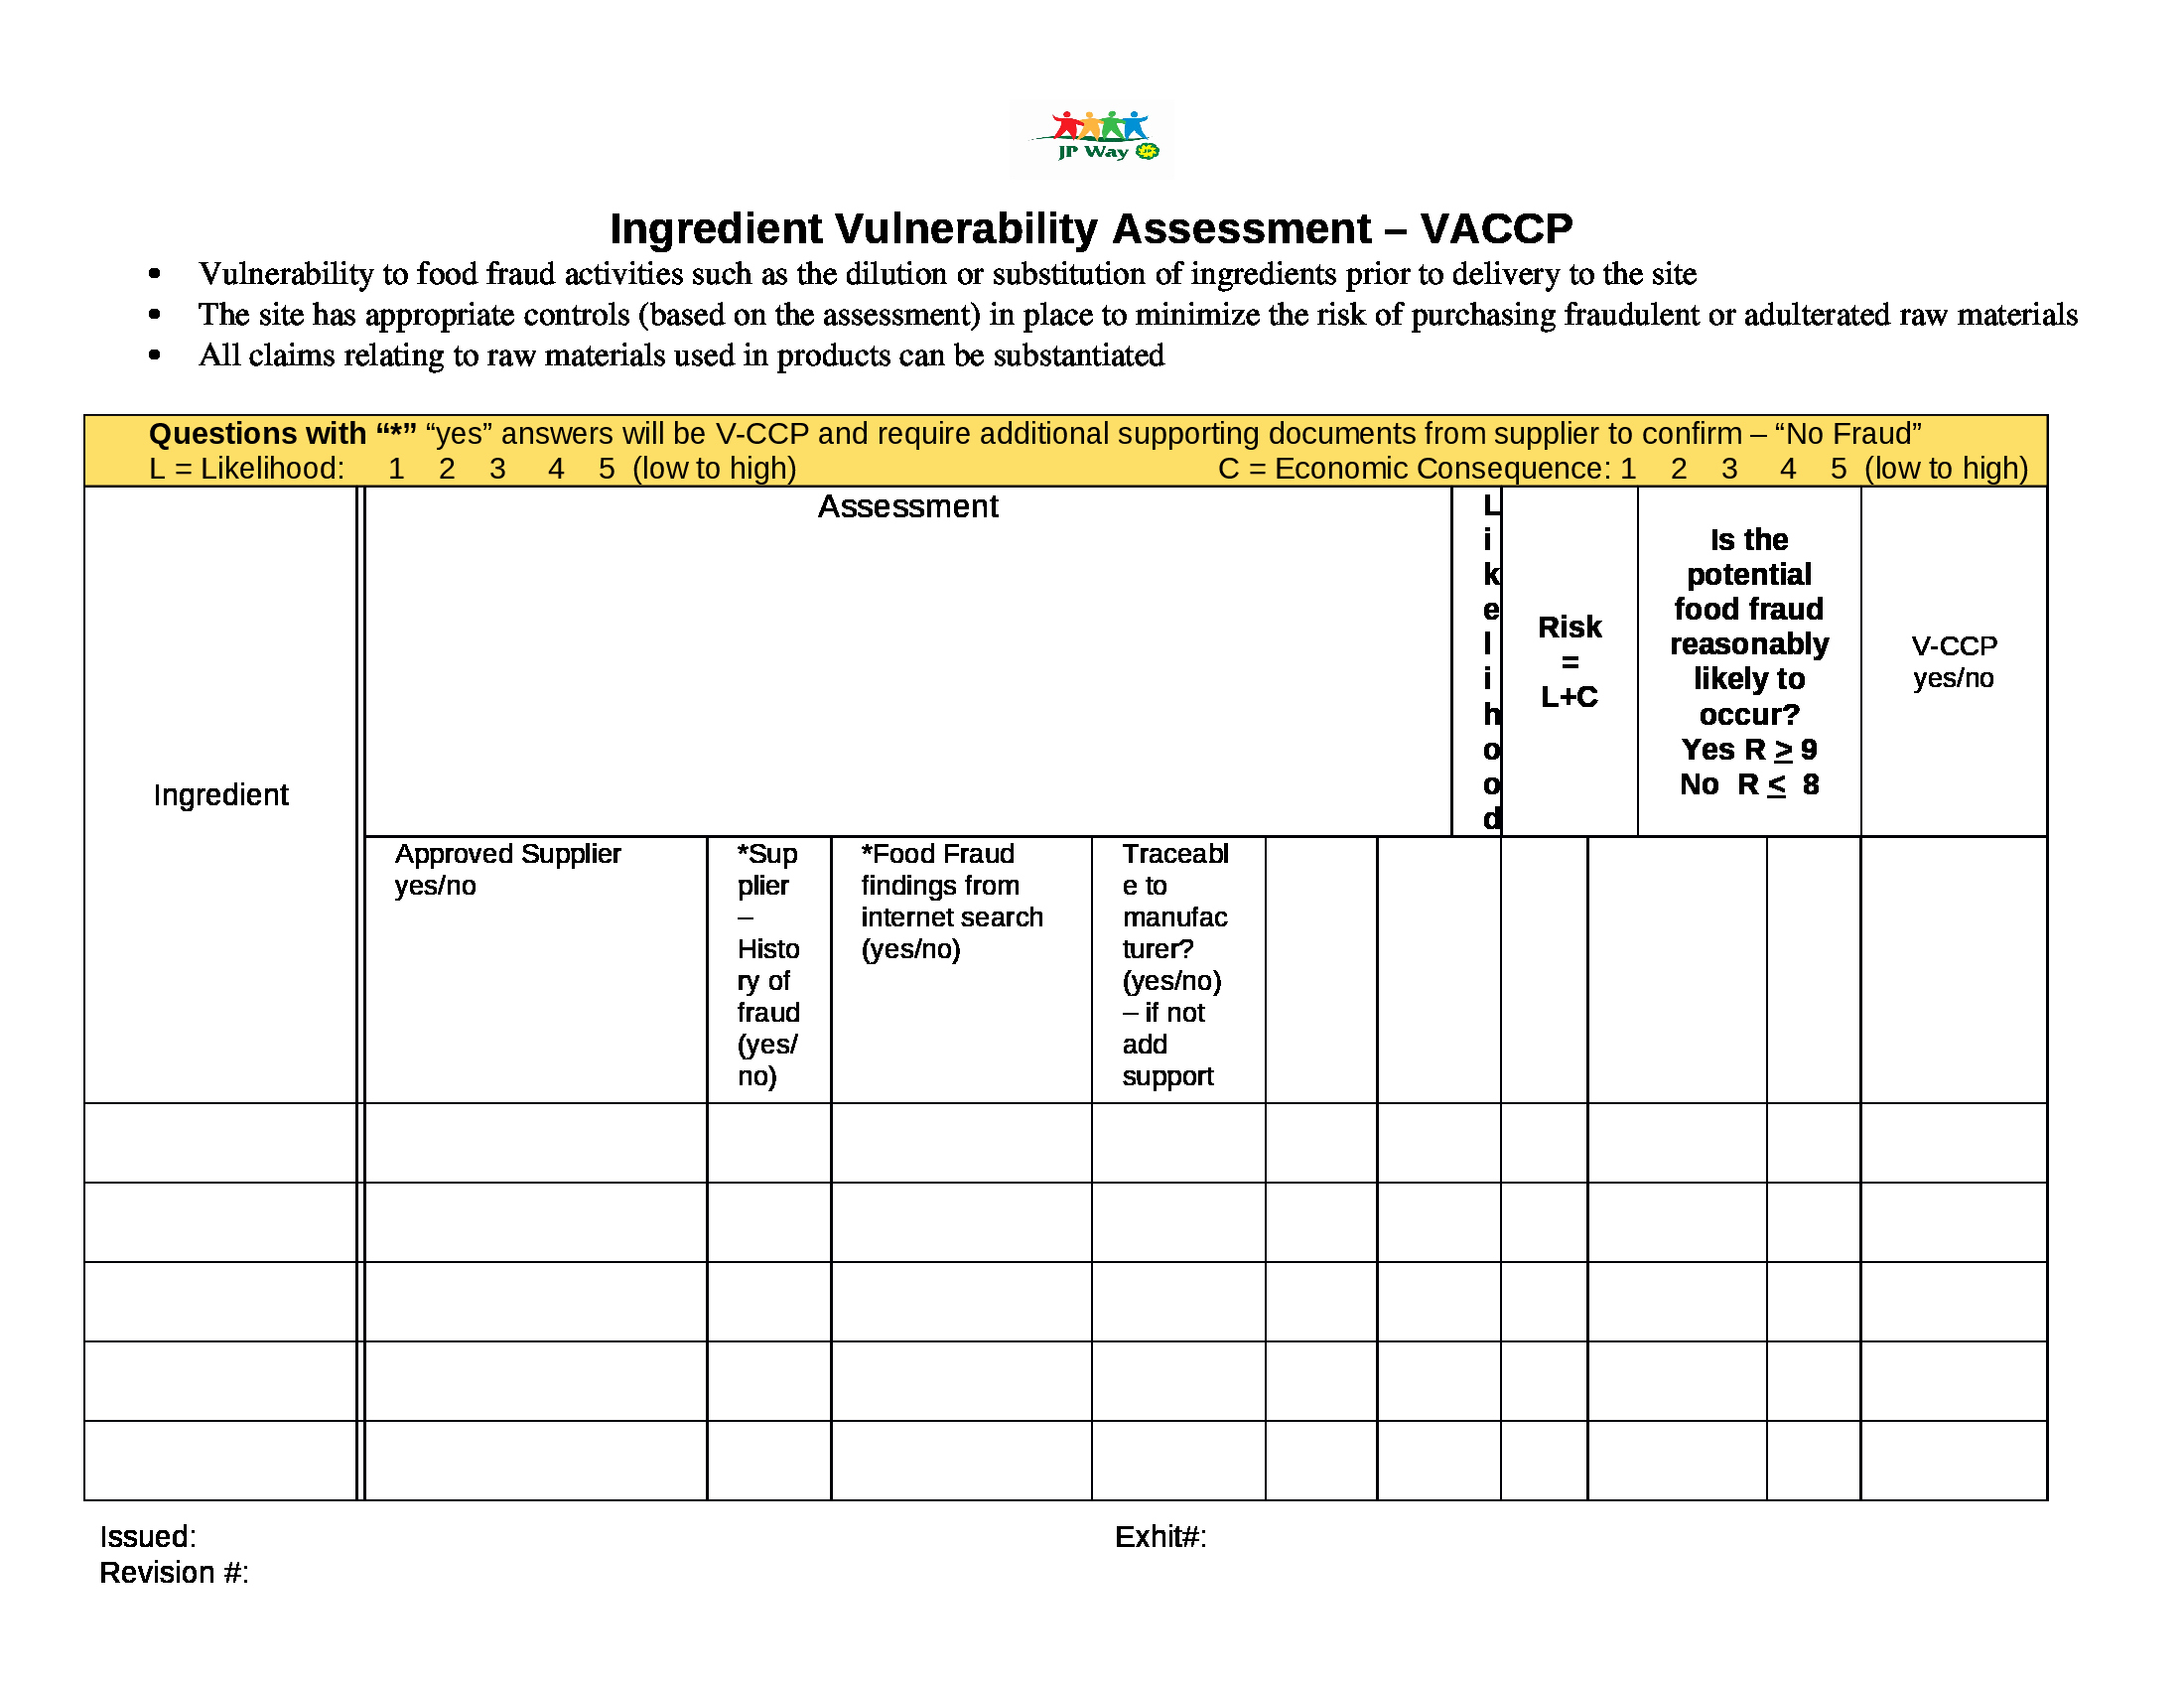 Vulnerability assessment Report Template Inspirational Vaccp Template Food Fraud Vulnerability [docx Document]